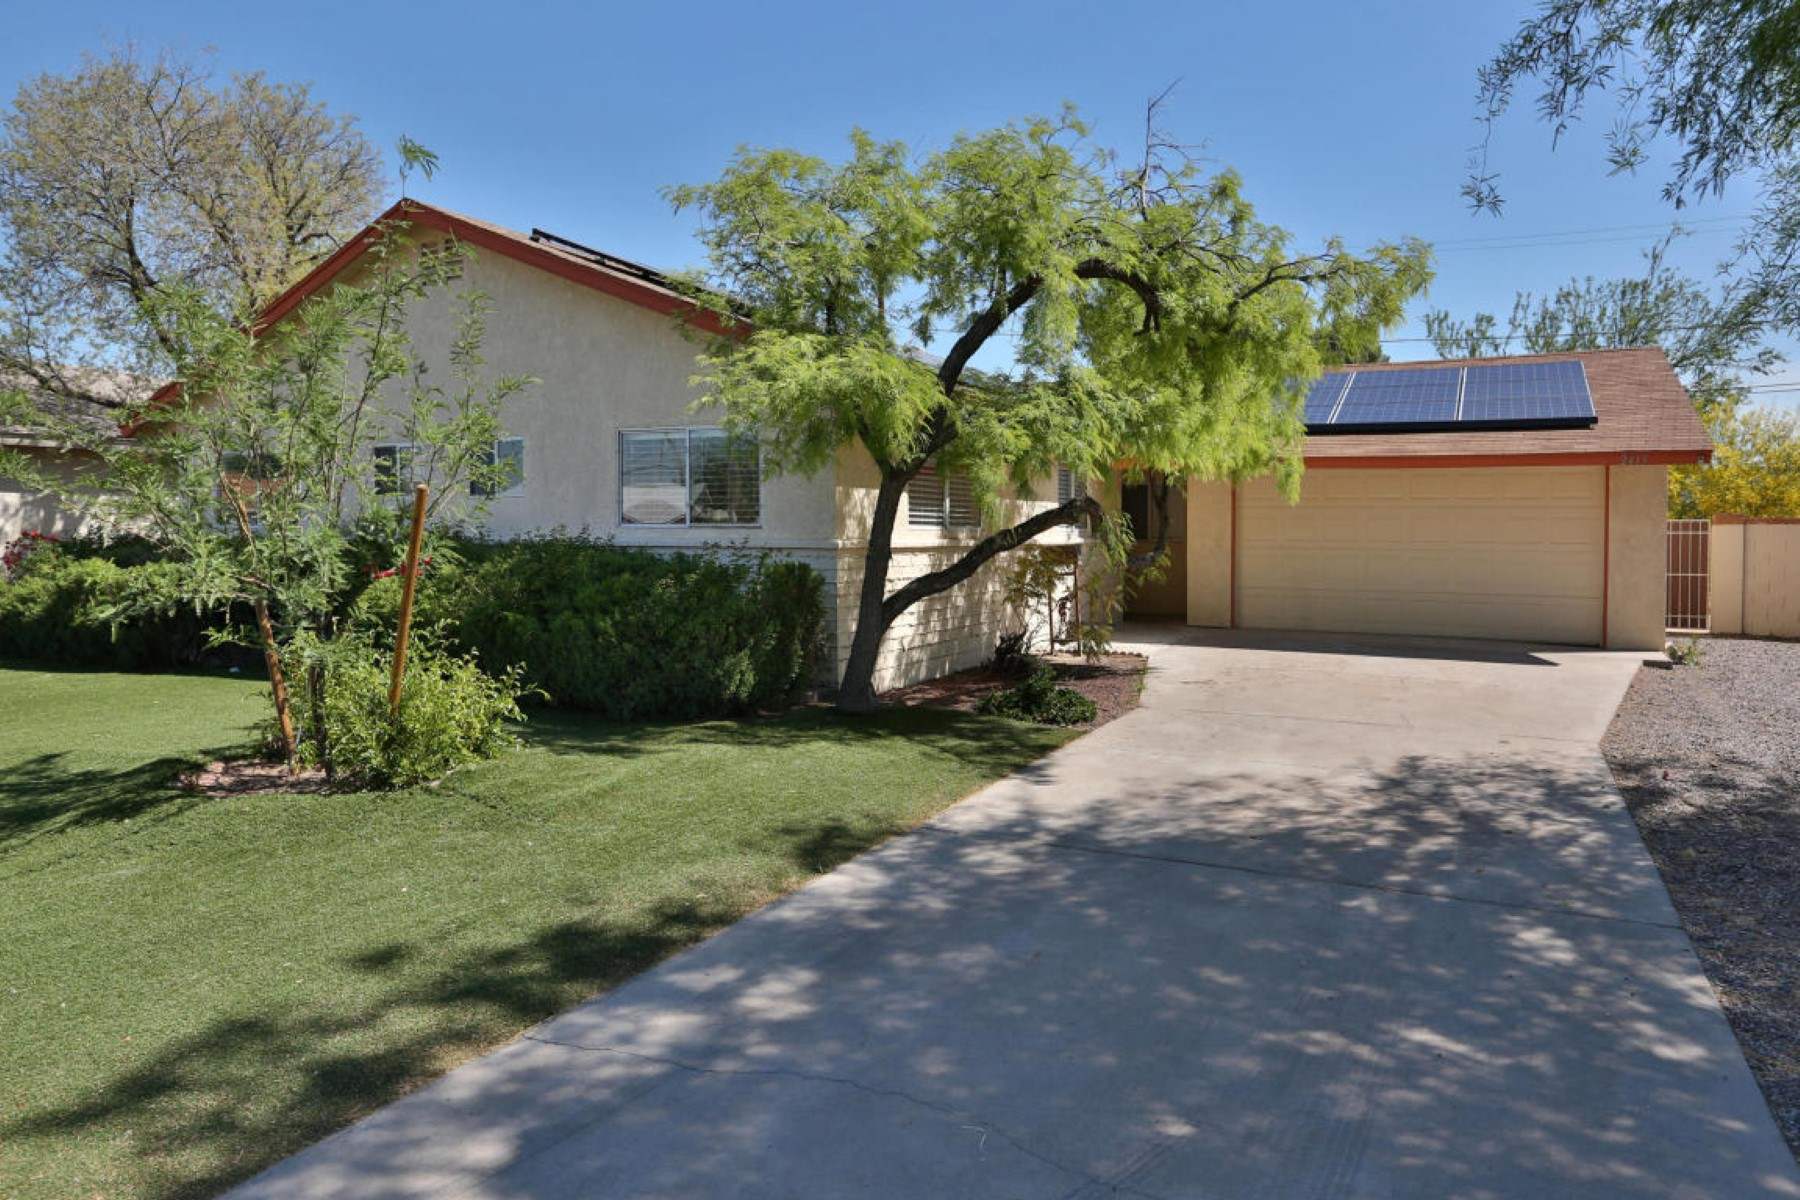 Single Family Home for Sale at Beautifully remodeled home in Melrose Village 2419 N 68th Pl Scottsdale, Arizona, 85257 United States